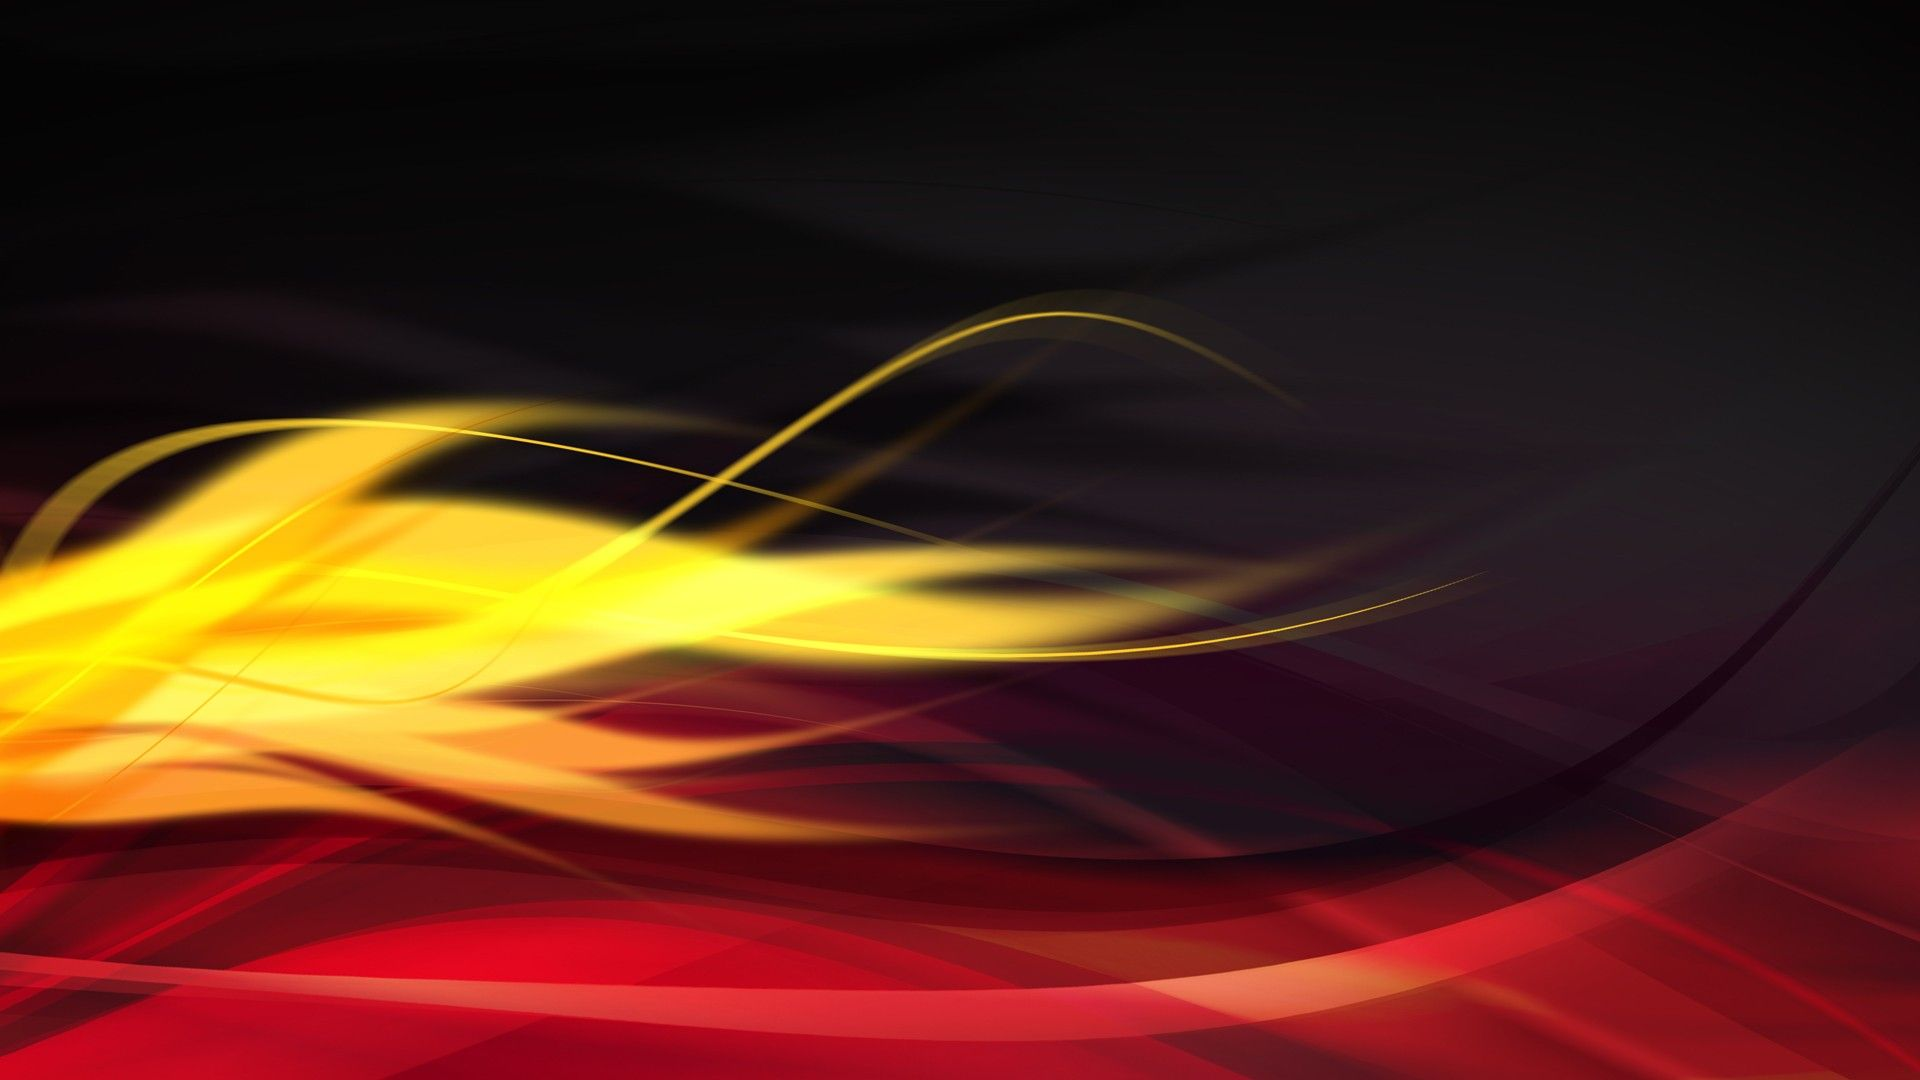 Fire-Flame-Full-HD-For-Free-wallpaper-wp3805312